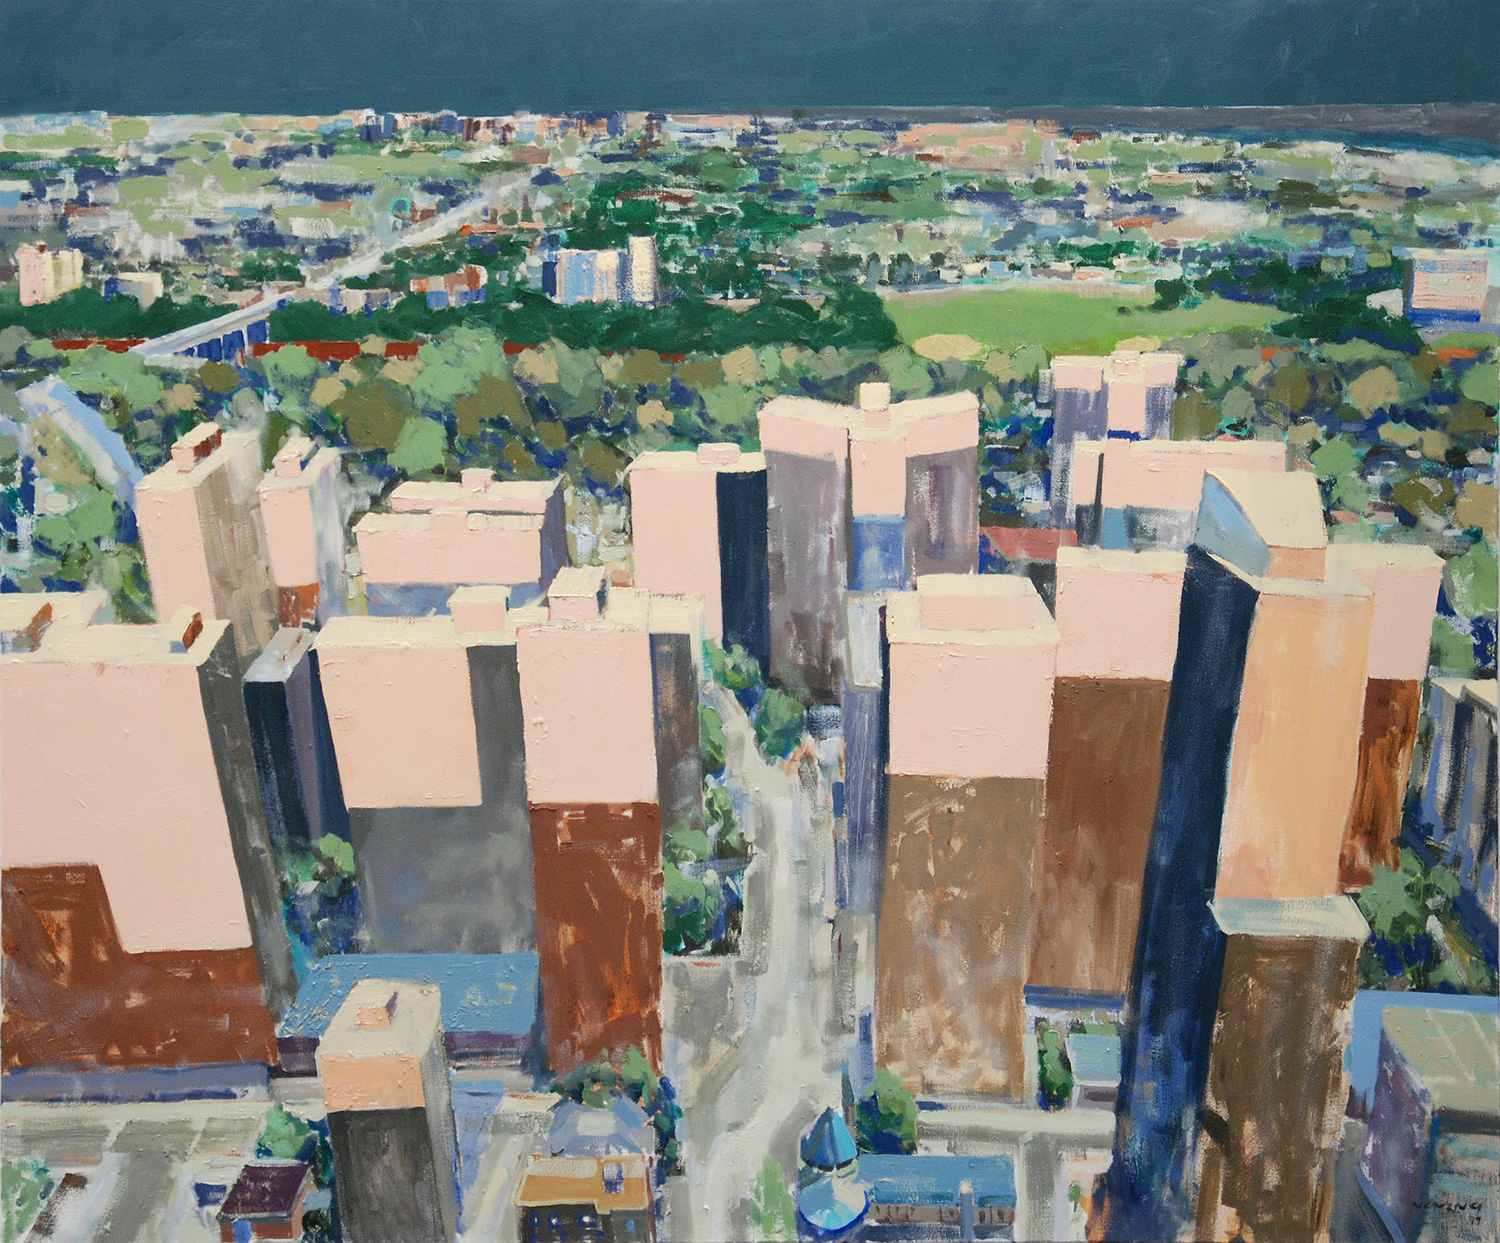 """""""The Sun Sets Over St. James Town"""", 2019. 72 x 60 inches. Oil on canvas."""